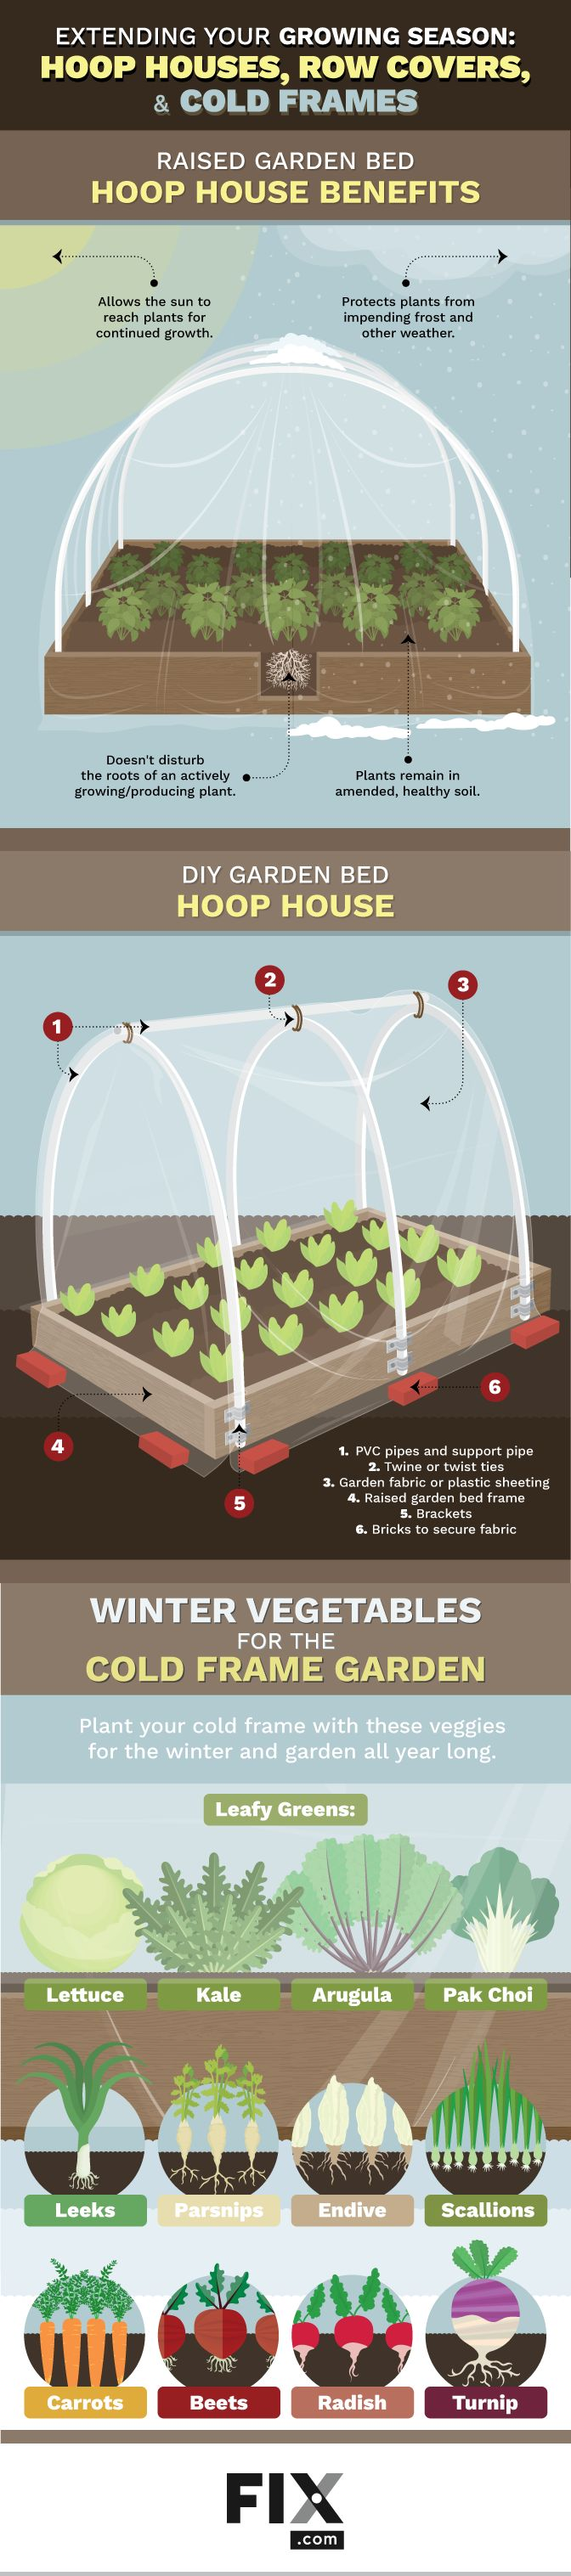 Extending your growing season is one of the best ways to get more from your garden, especially in short season climates.  I know because I've been doing it for years in our zone 5 Canadian climate, even with the heavy wet snowfalls and temperatures that dip down to -20C/-4F.  Although i